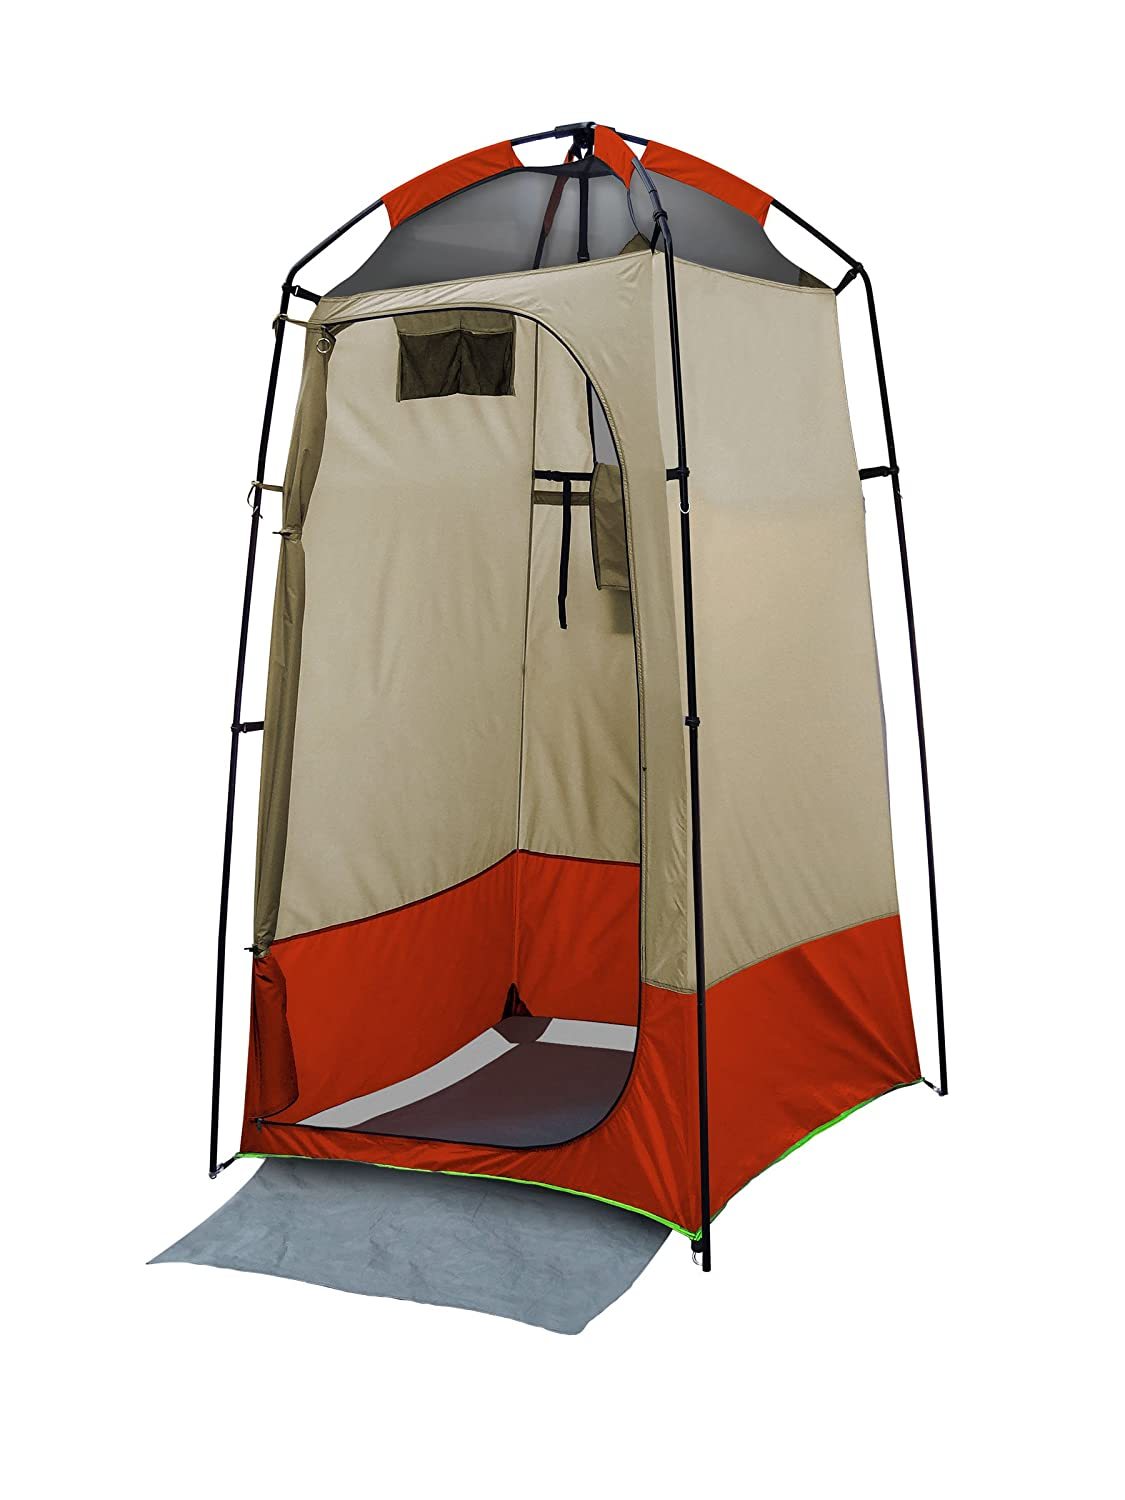 Amazon.com  Stinky Pete 1 Person Deluxe Shower/Toilet/Changing Room Tent  Sports u0026 Outdoors  sc 1 st  Amazon.com & Amazon.com : Stinky Pete 1 Person Deluxe Shower/Toilet/Changing ...